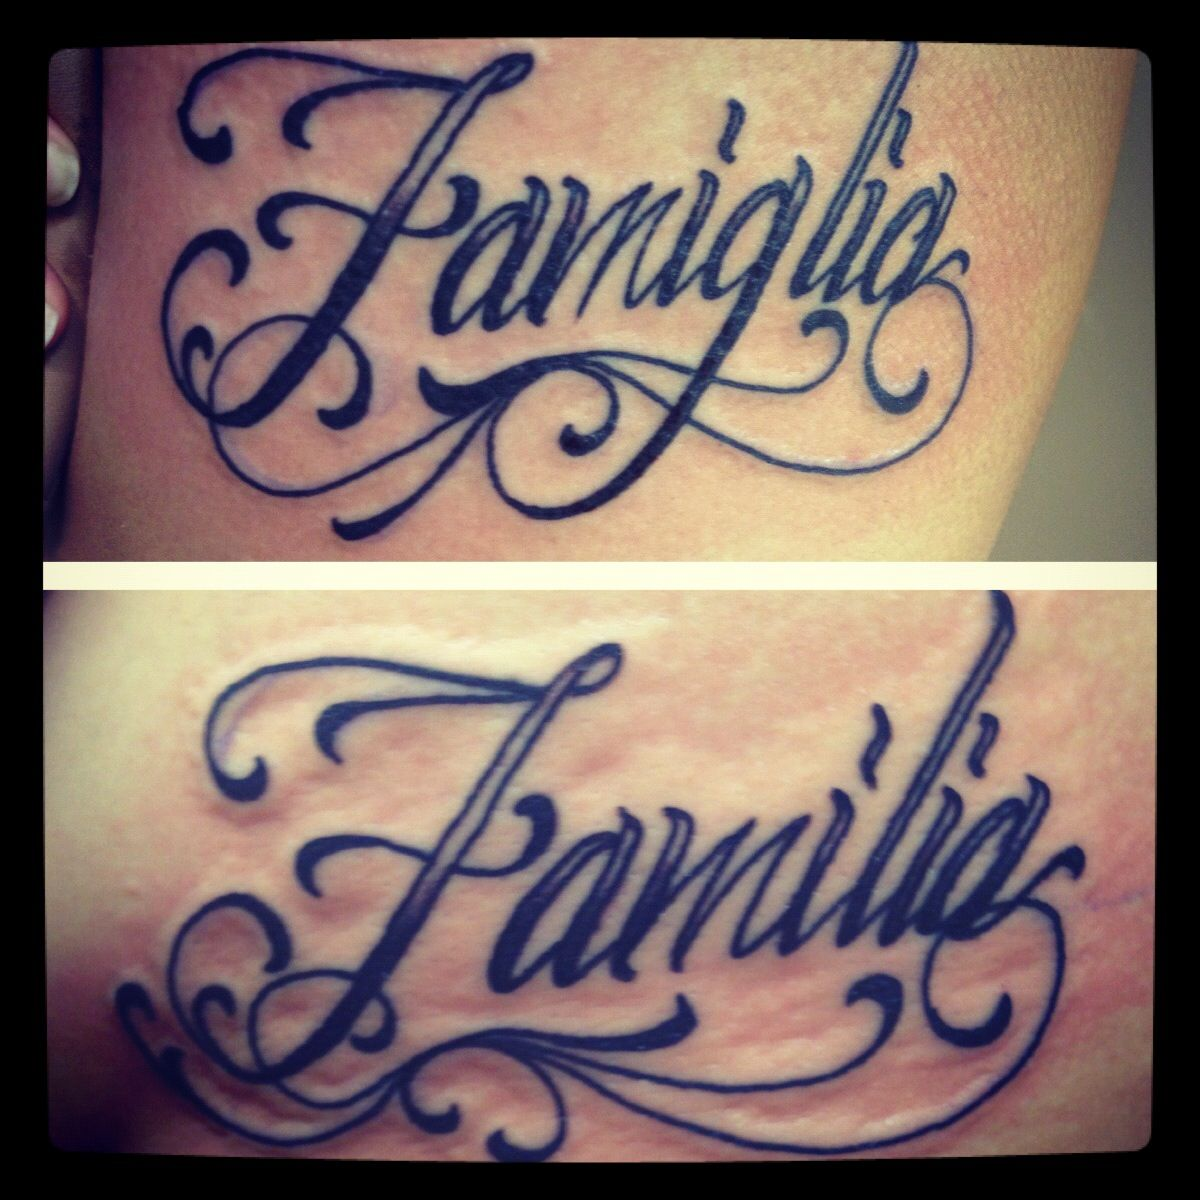 Me and my sister got matching tattoos symbolizing family for Tattoo in spanish